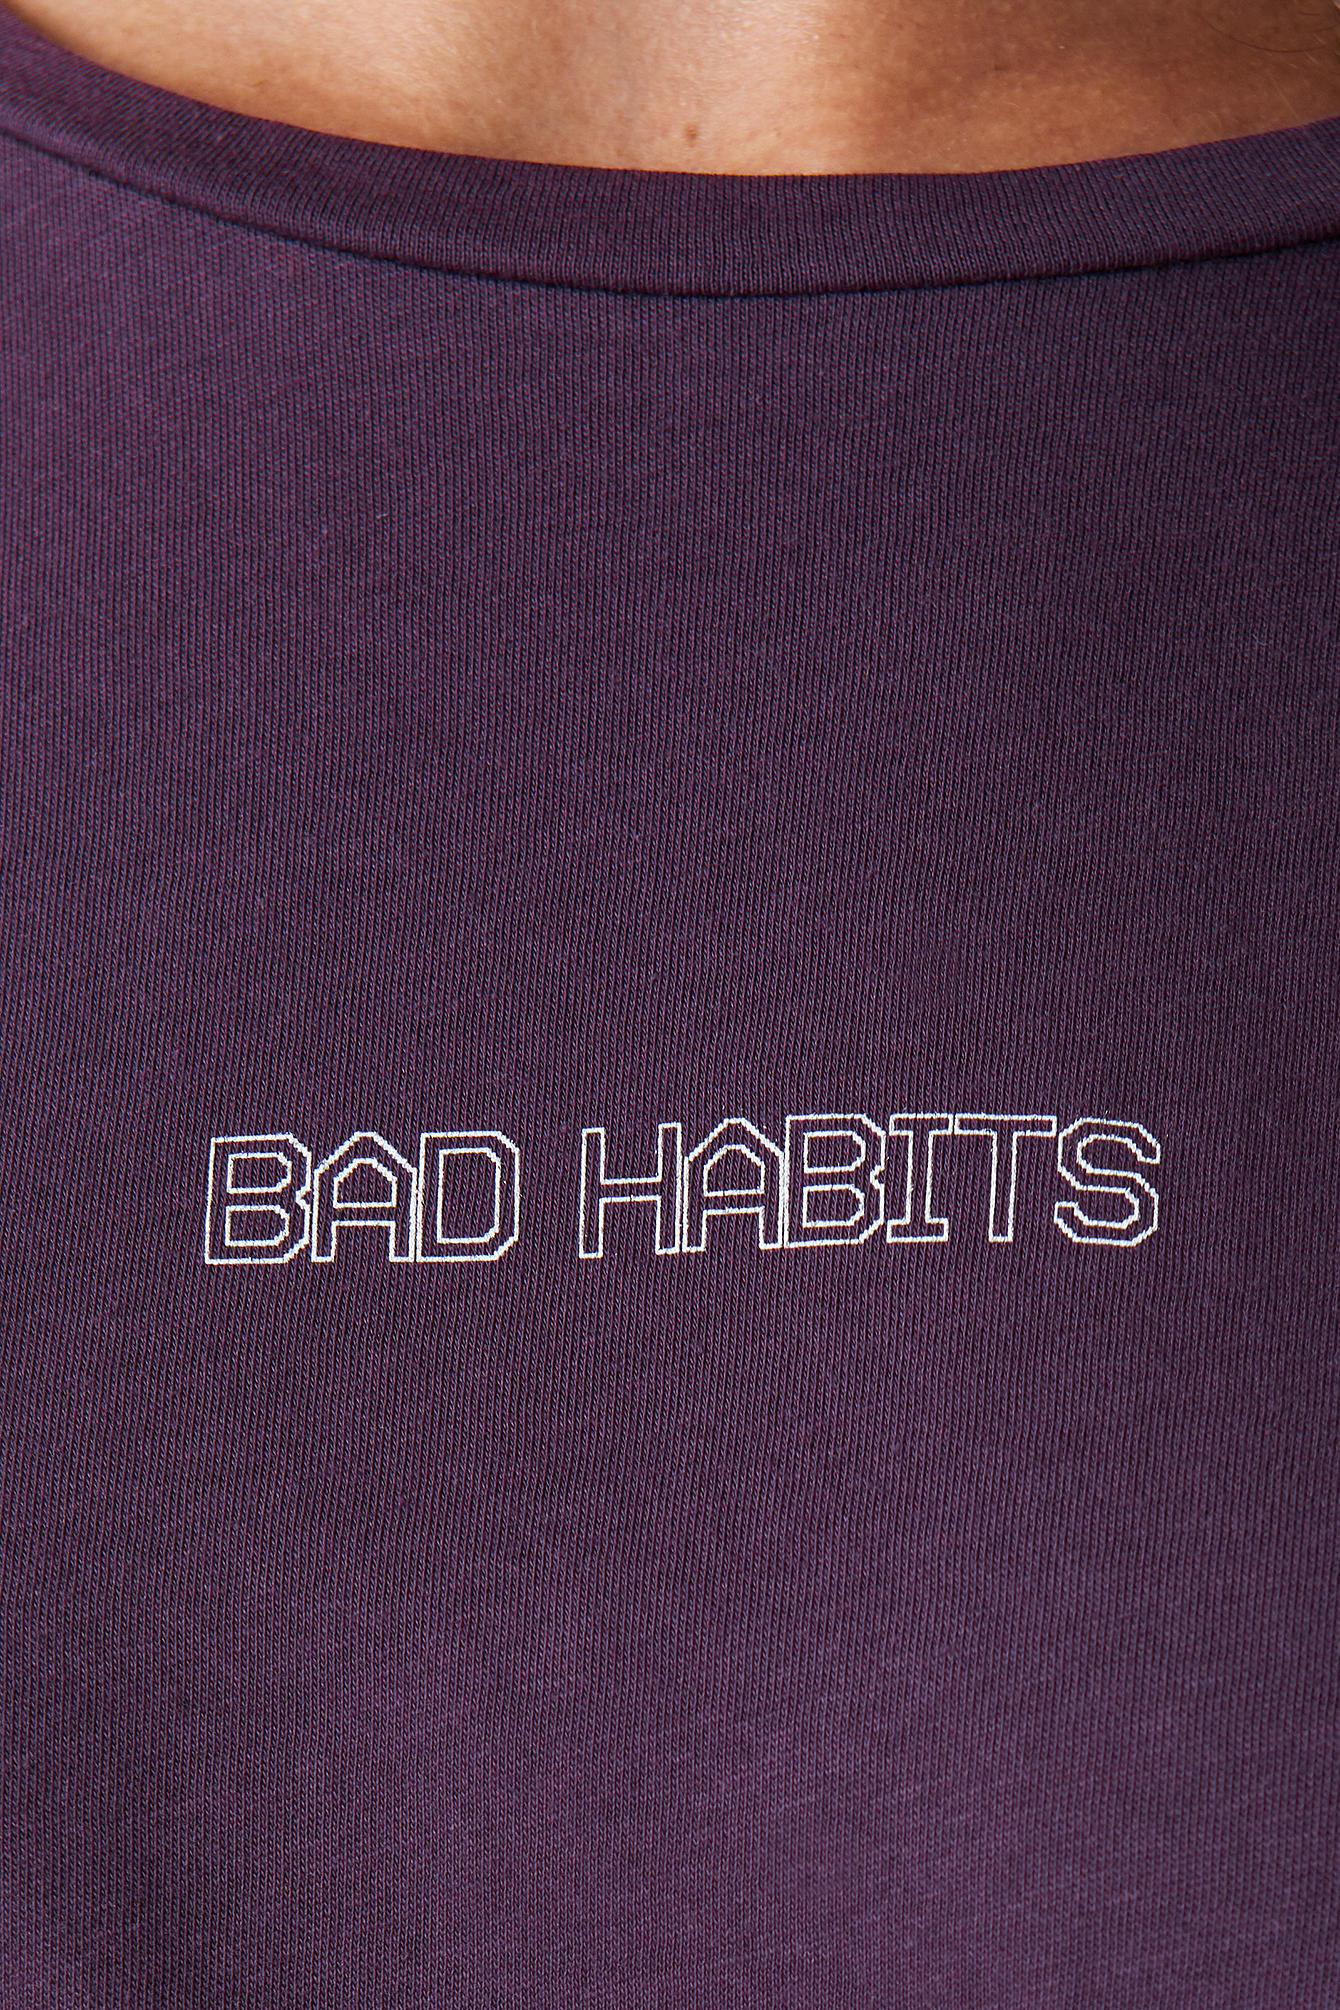 Bad Habits Oversized Tee NA-KD.COM